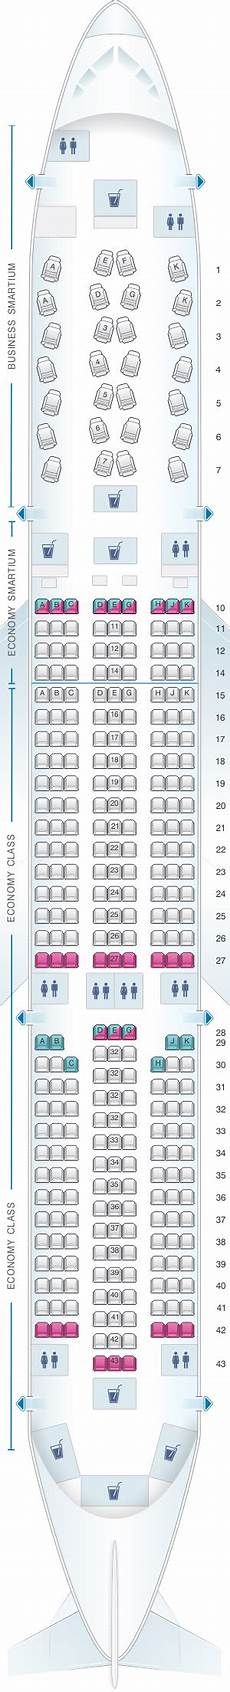 Airbus A350 900 Seating Chart Seat Map Asiana Airlines Airbus A350 900 Seatmaestro